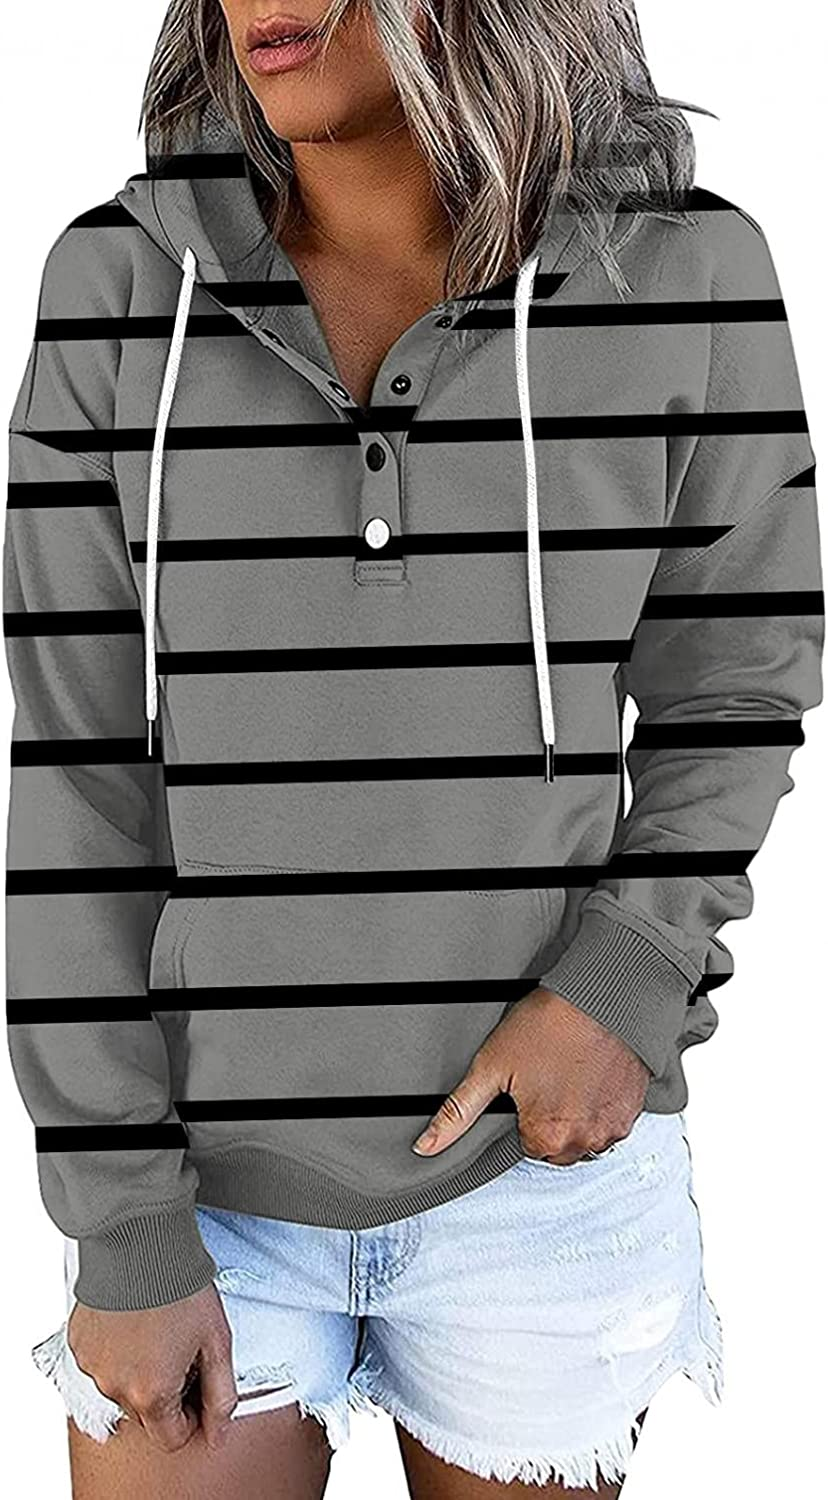 Comfy Hoodie for Women Long Pullove Popular products Blouse Striped Max 86% OFF Casual Sleeve